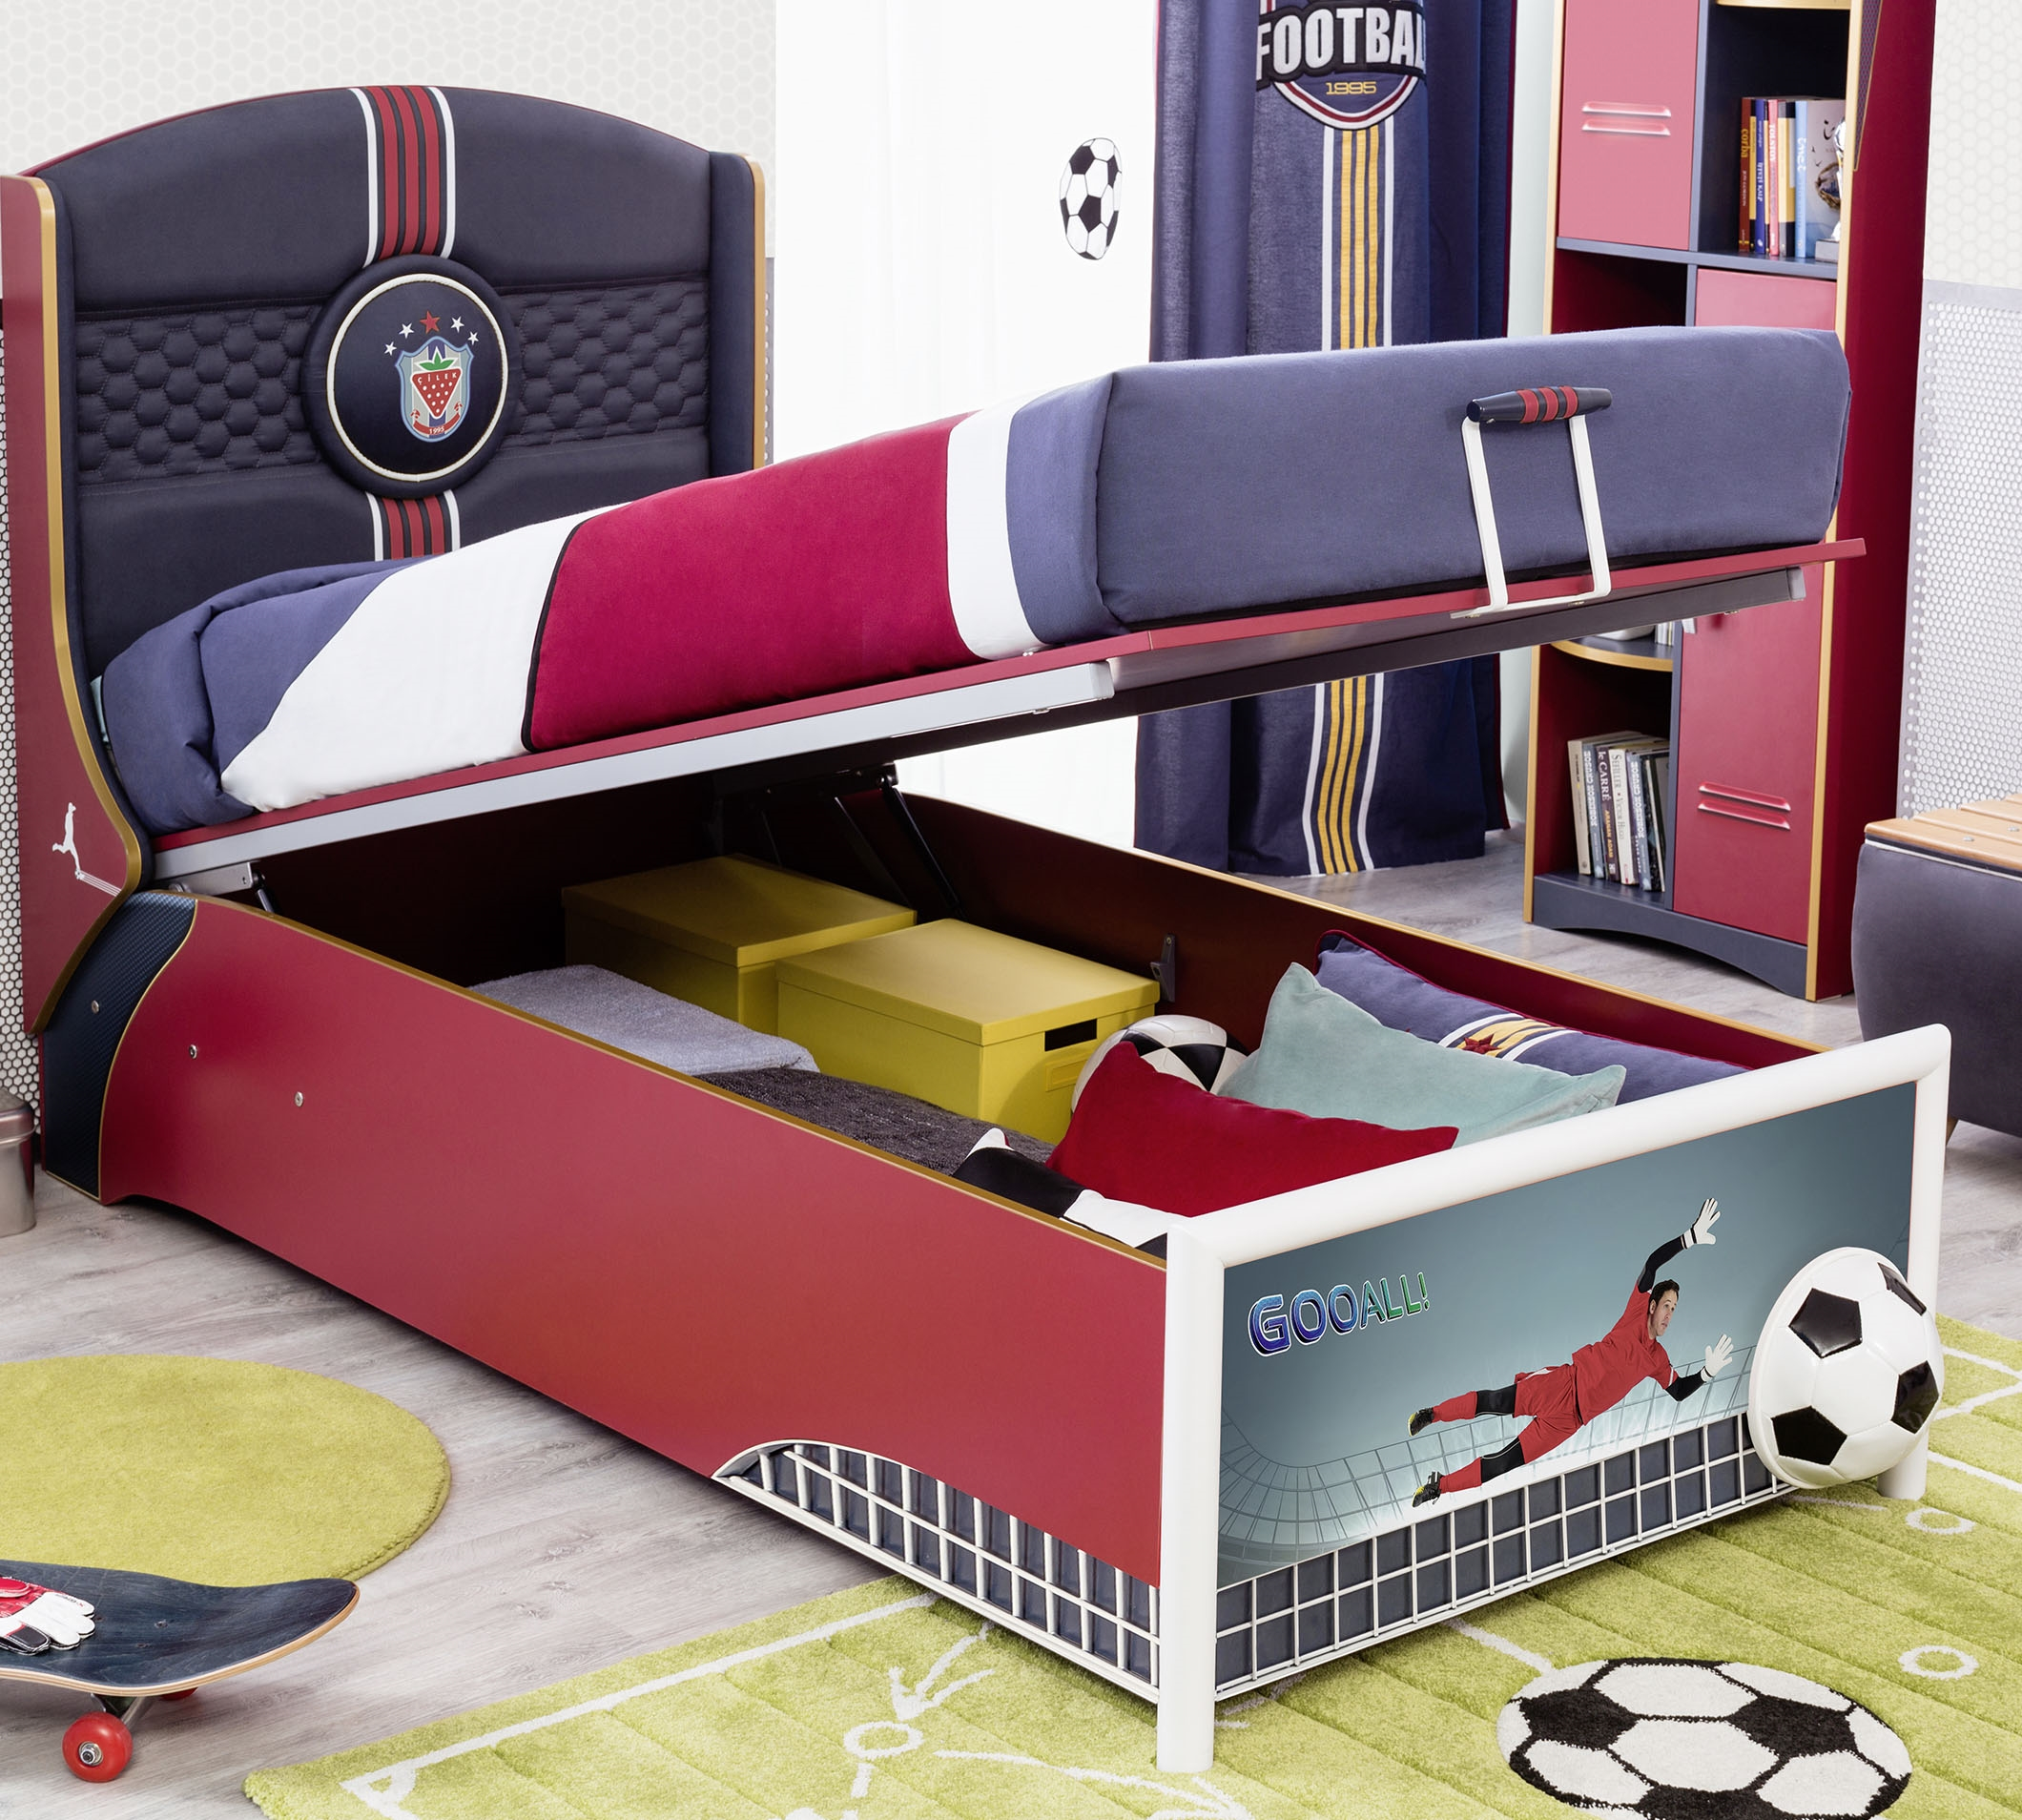 Football Bed With Base 90x190 Cm Forest Mobl